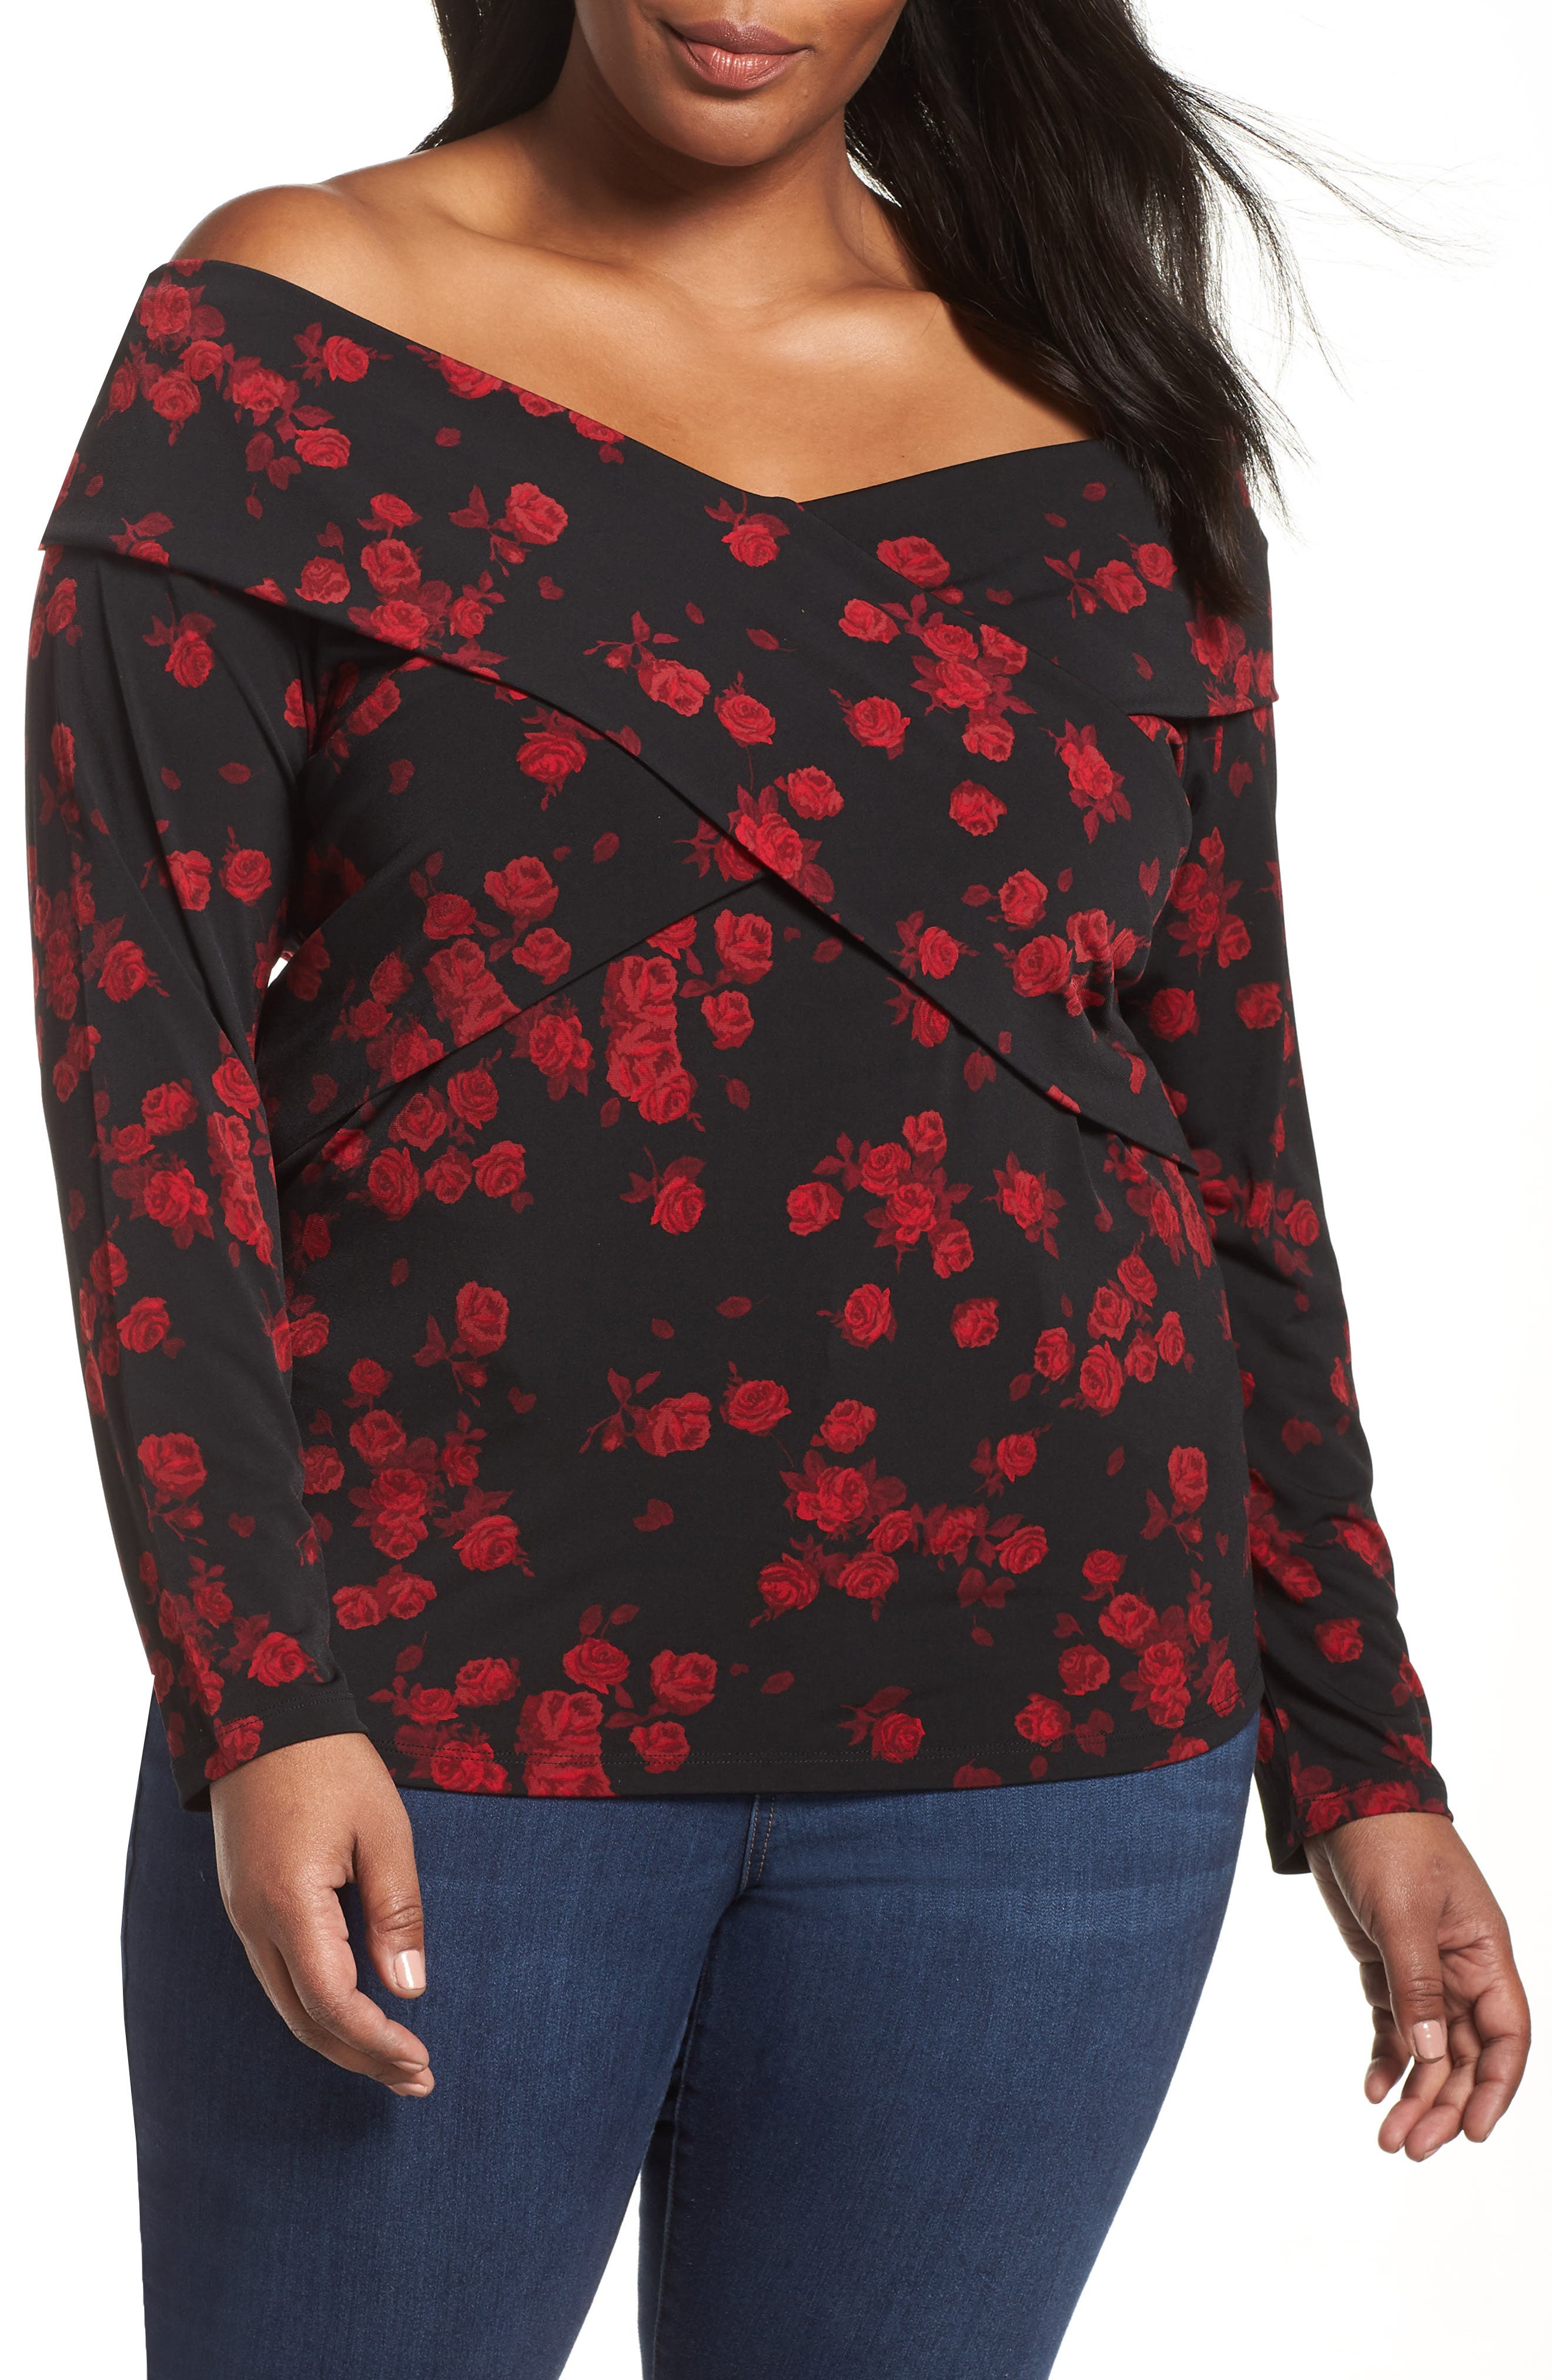 Off the Shoulder Rose Top,                             Main thumbnail 1, color,                             BLACK/ RED CURRANT